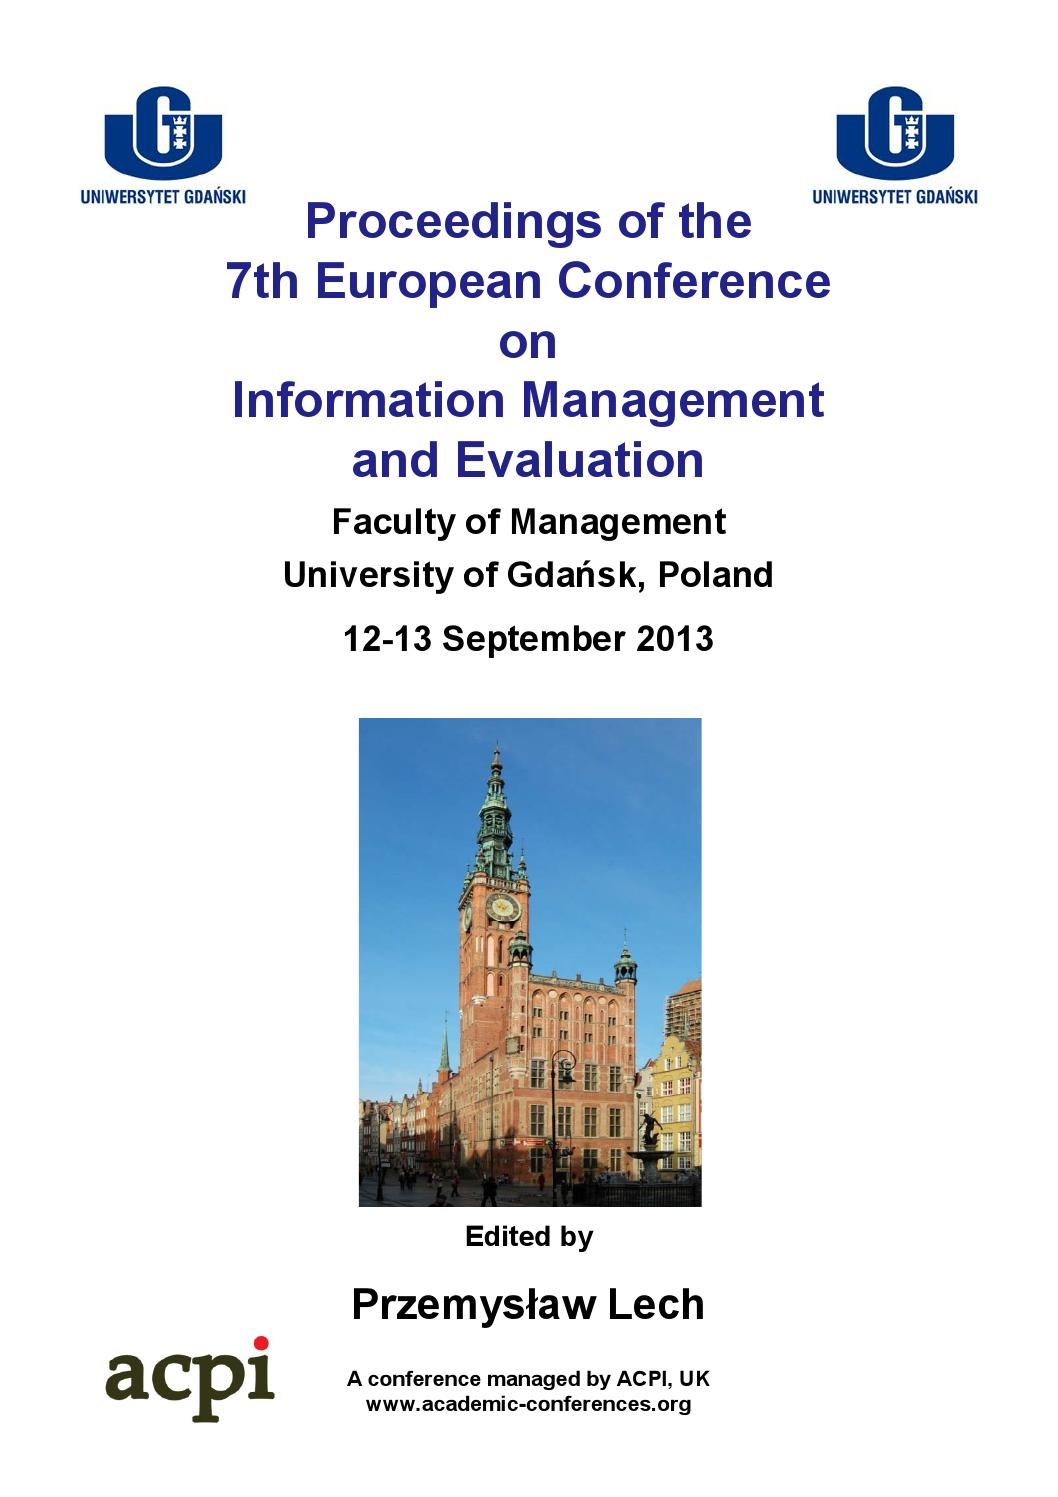 Proceedings of the 7th European Conference on Information Management and  Evaluation ECIME 2013 by ACPIL - issuu